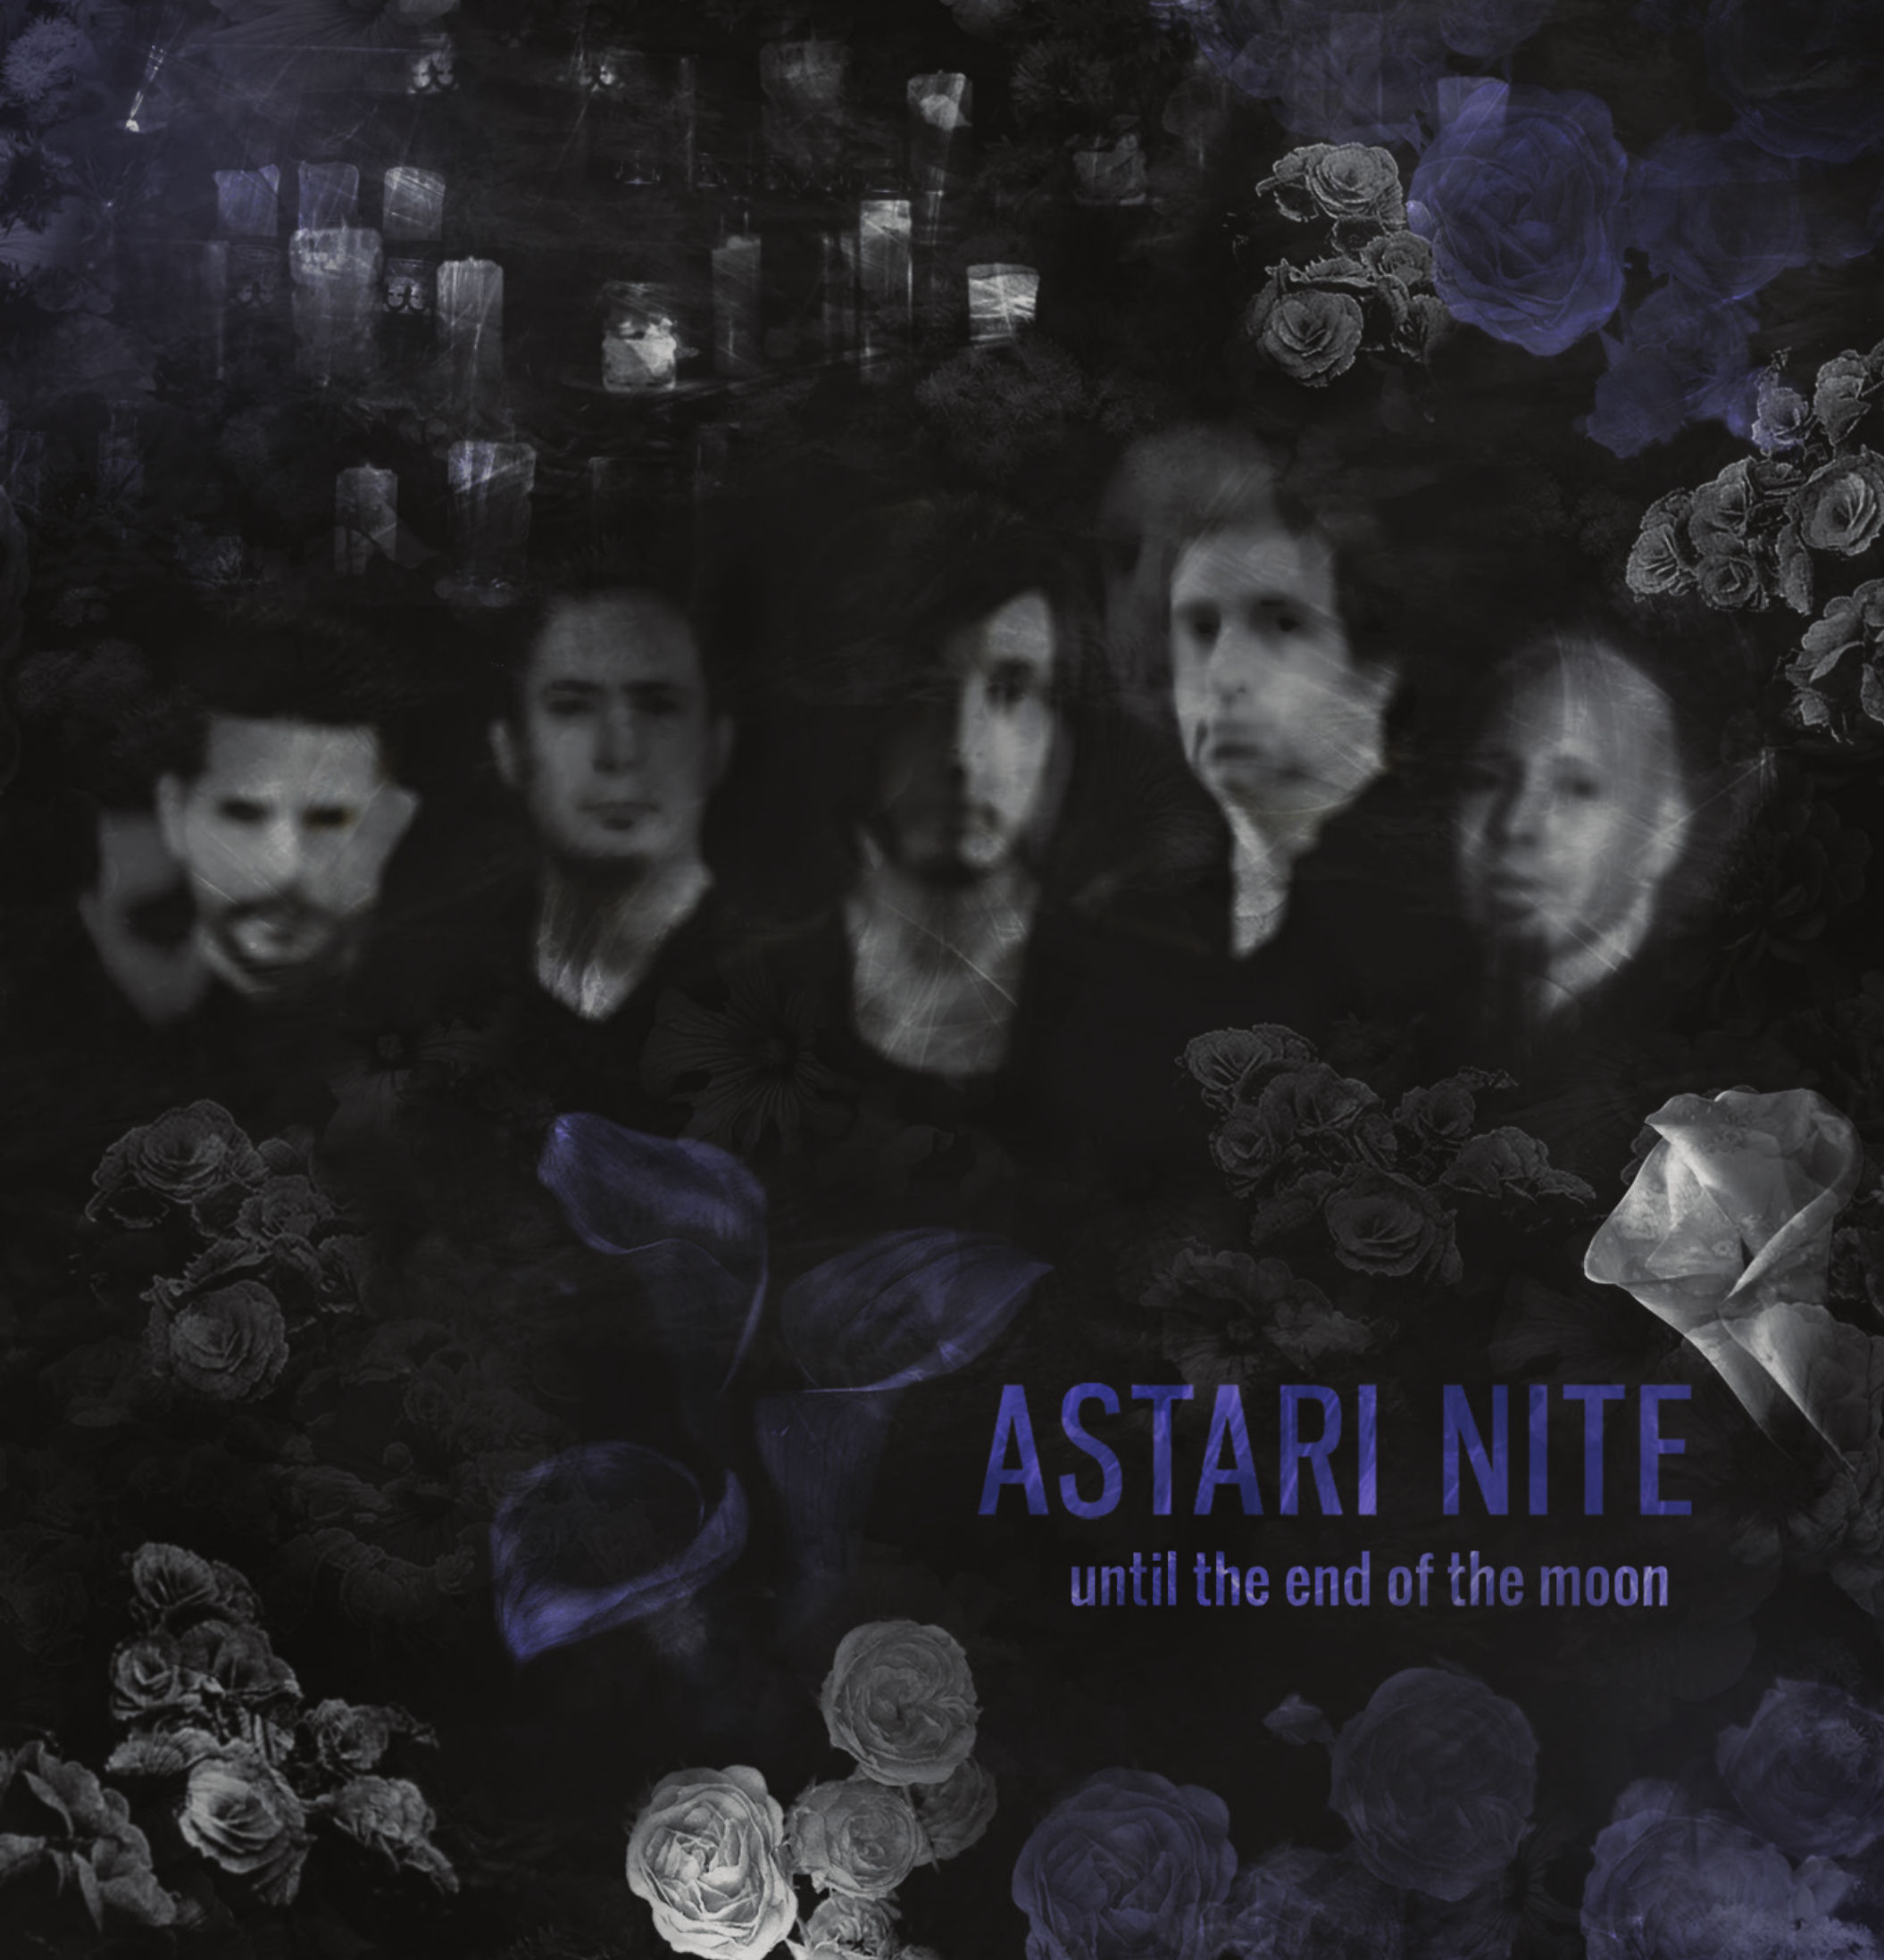 Astari Nite – Until the end of the moon